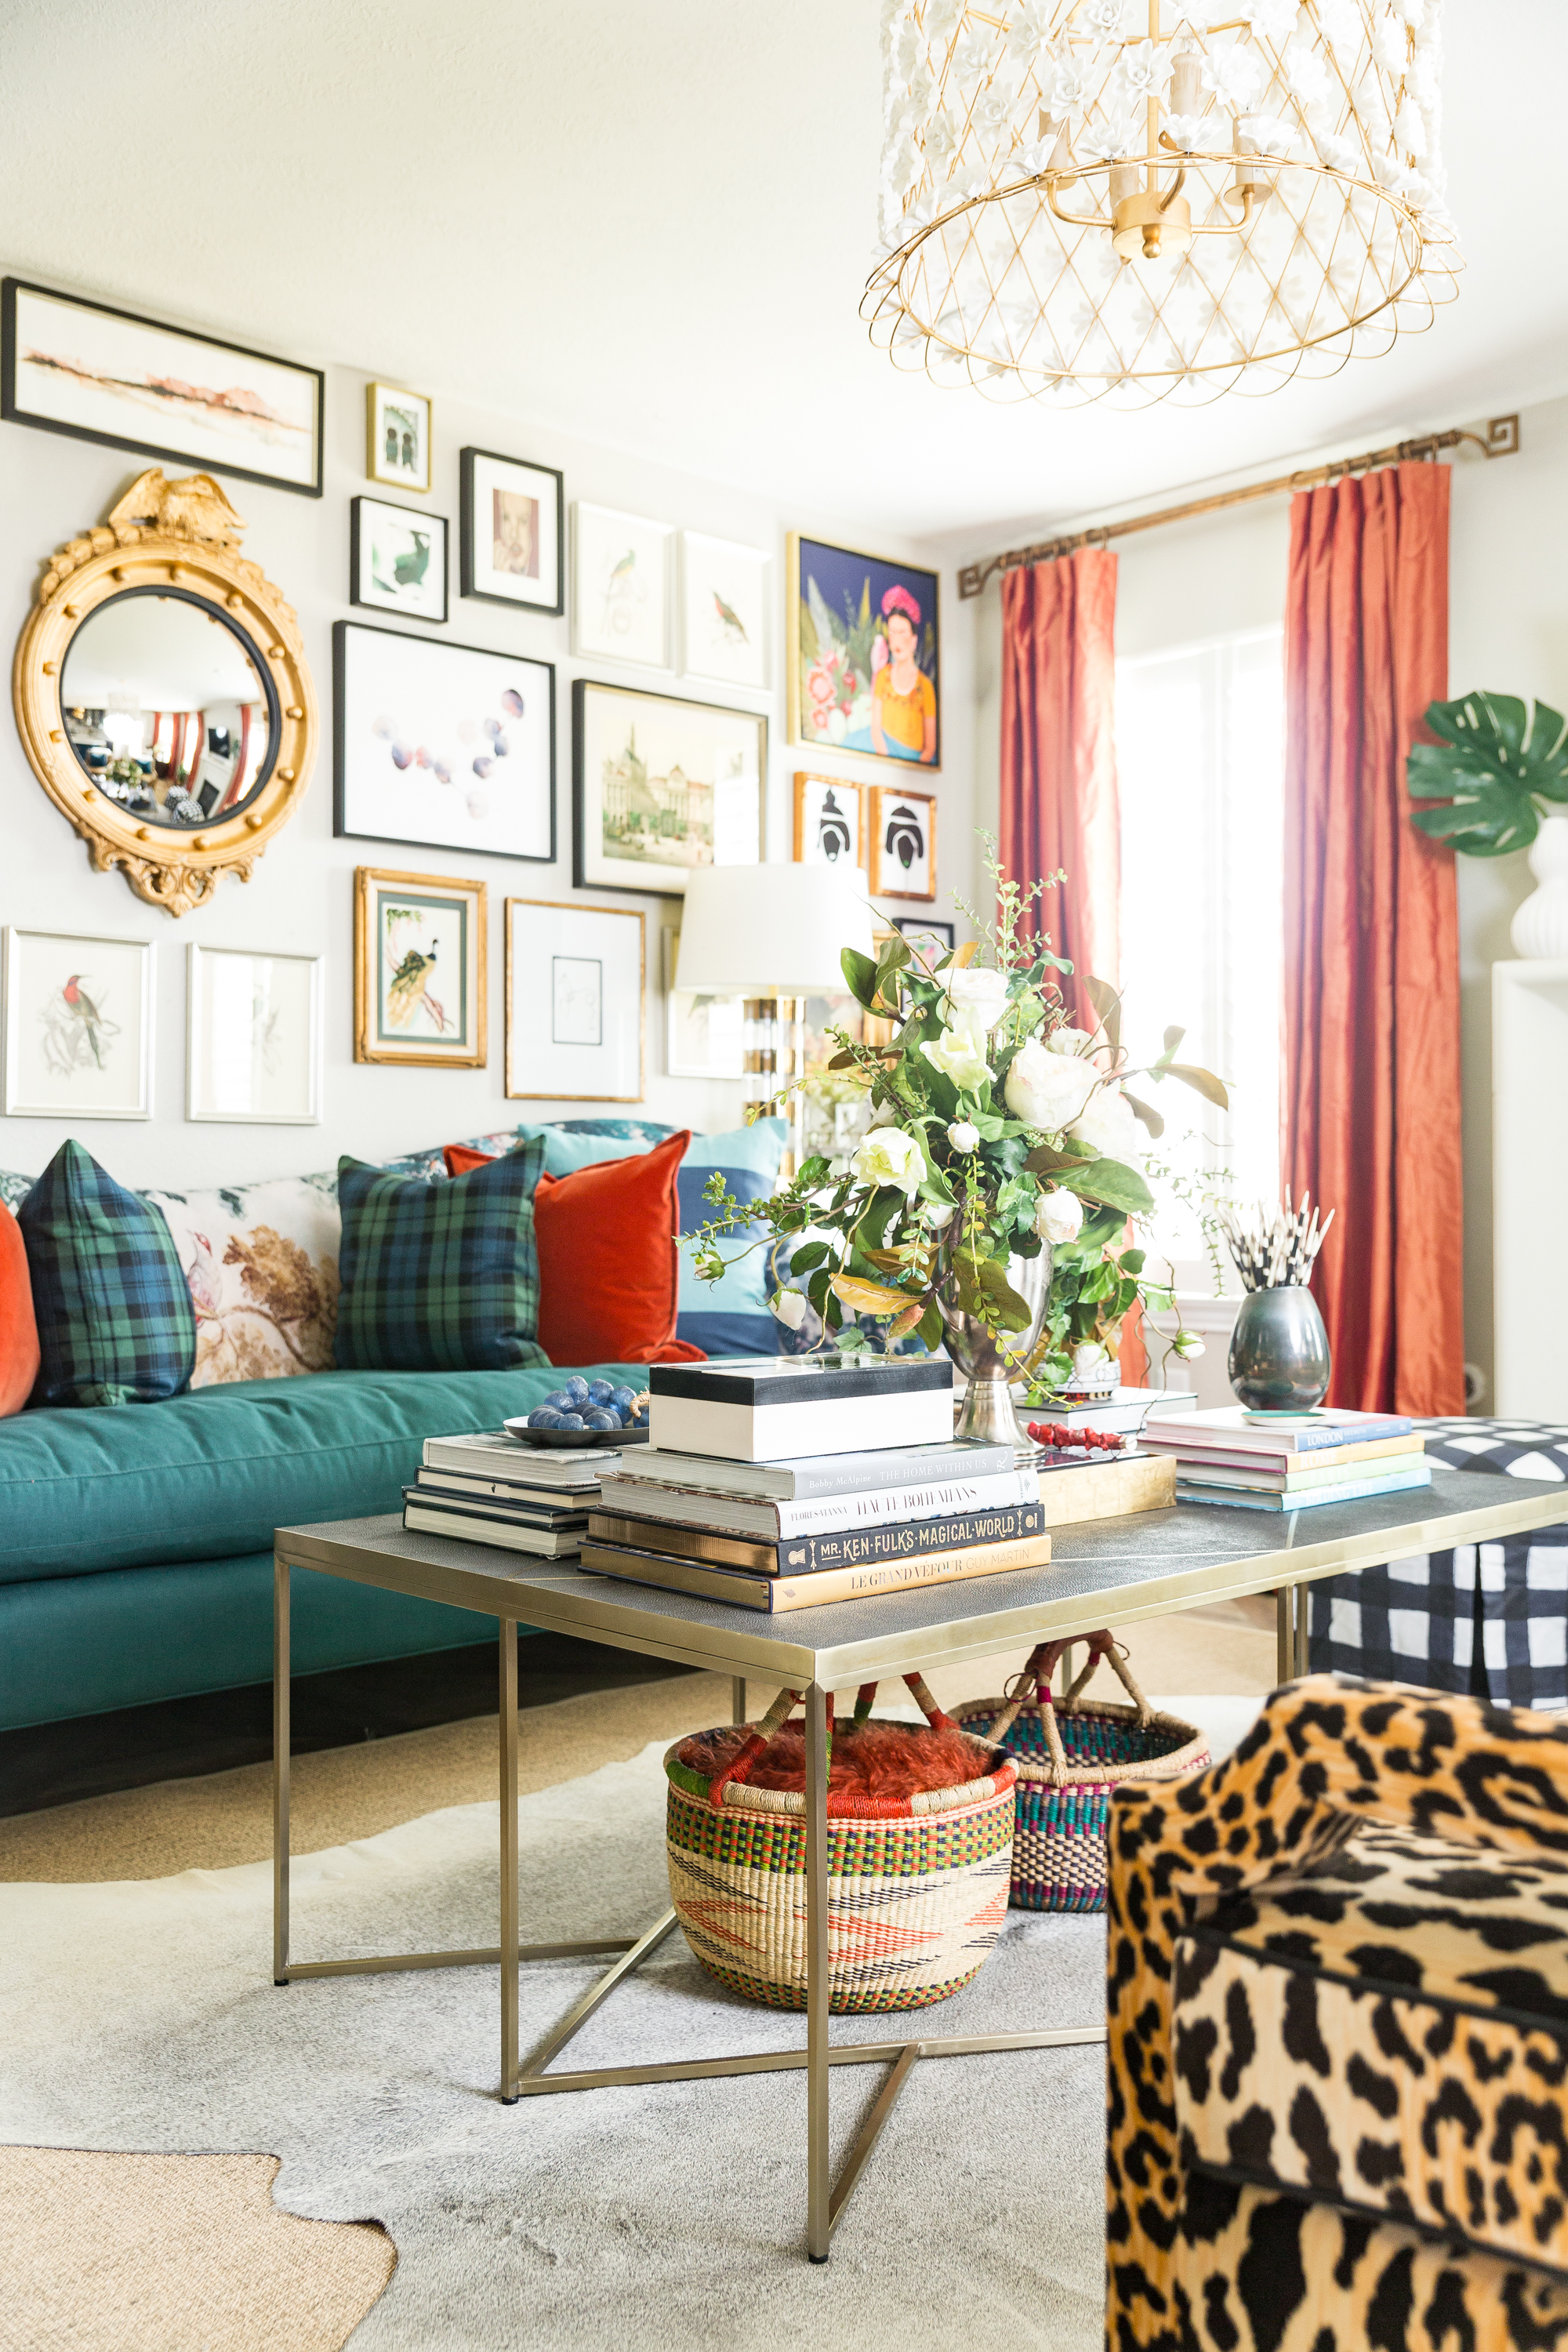 A maximalist living room